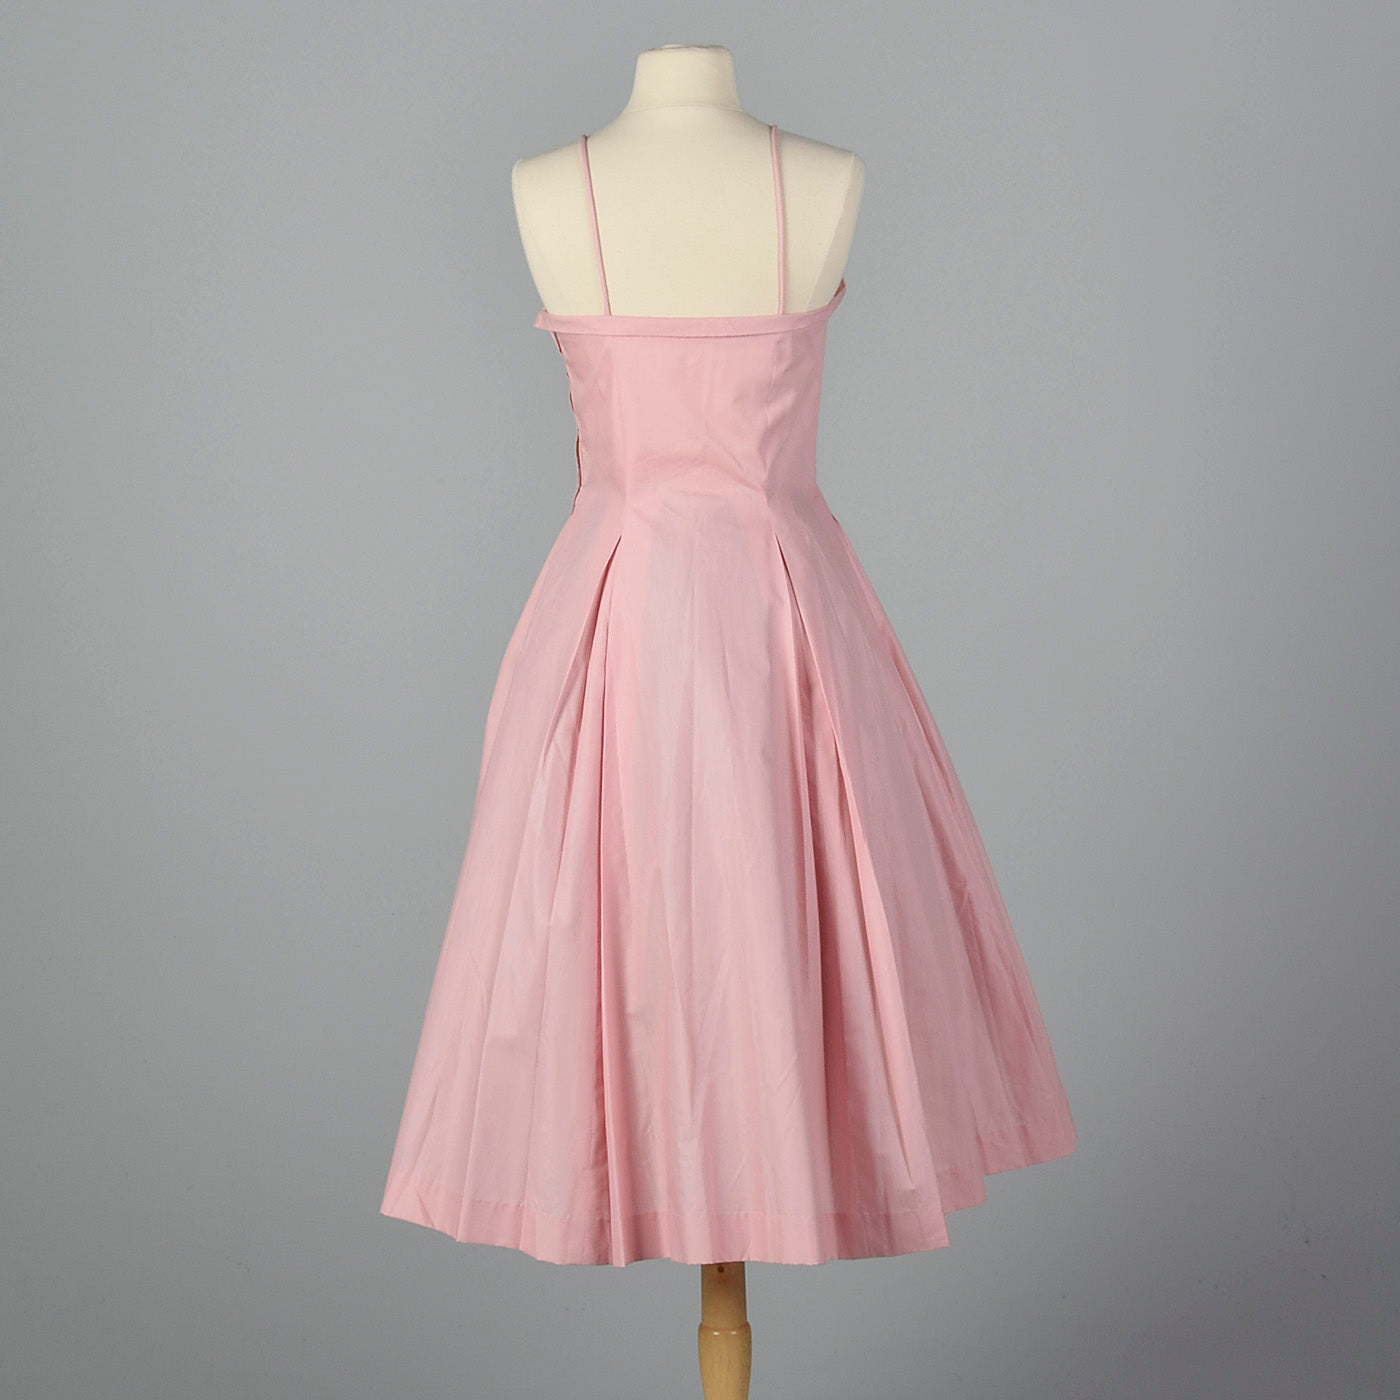 1950s Pink Party Dress with Full Skirt